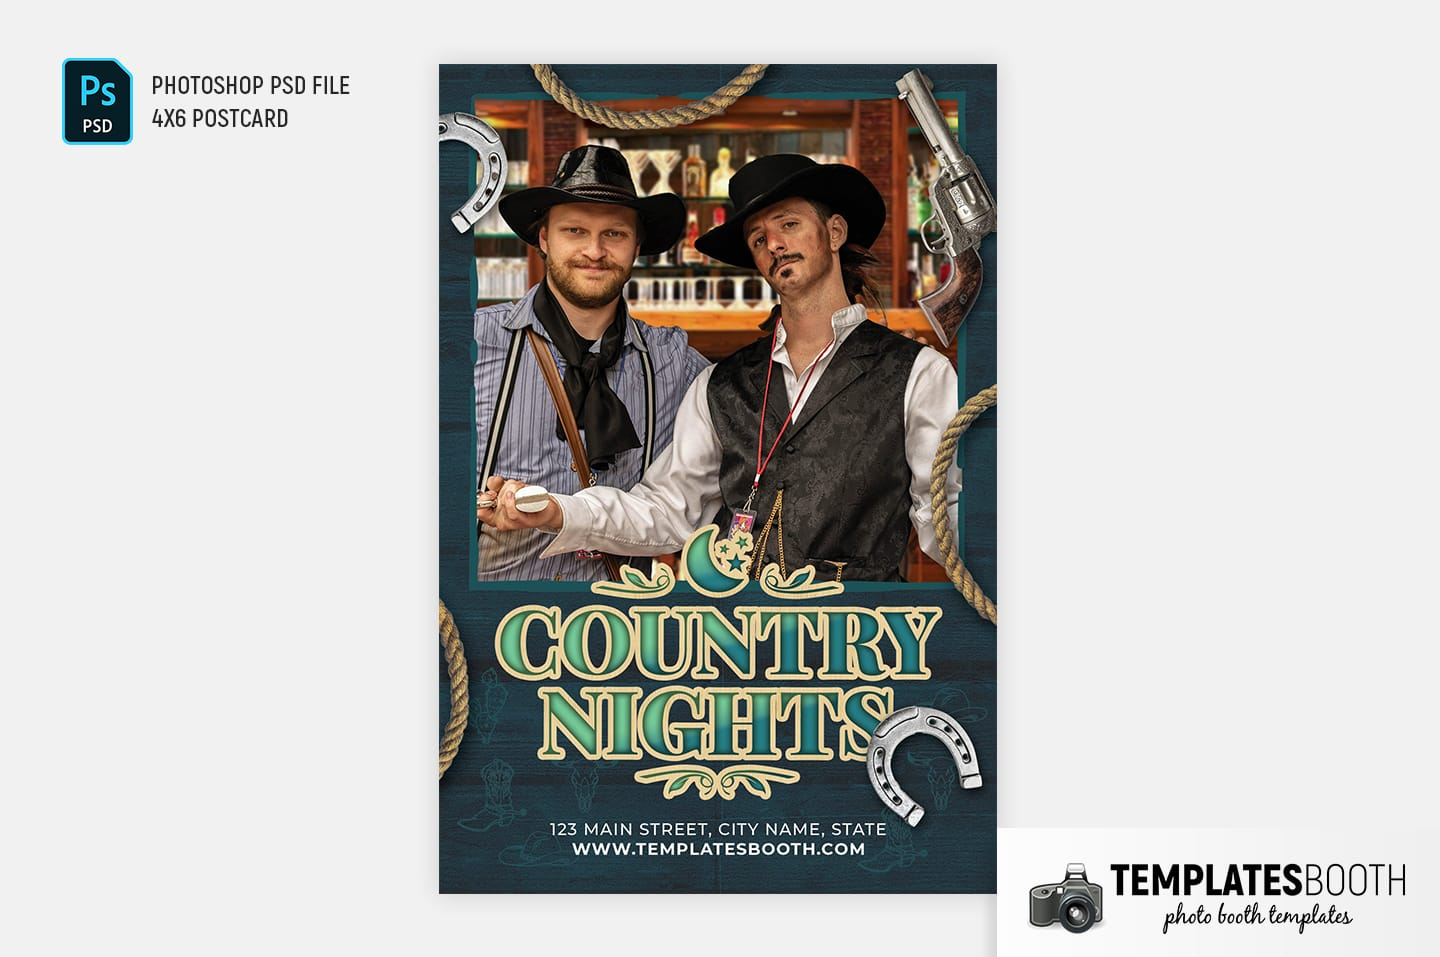 Country Nights Photo Booth Template (4x6 postcard portrait)